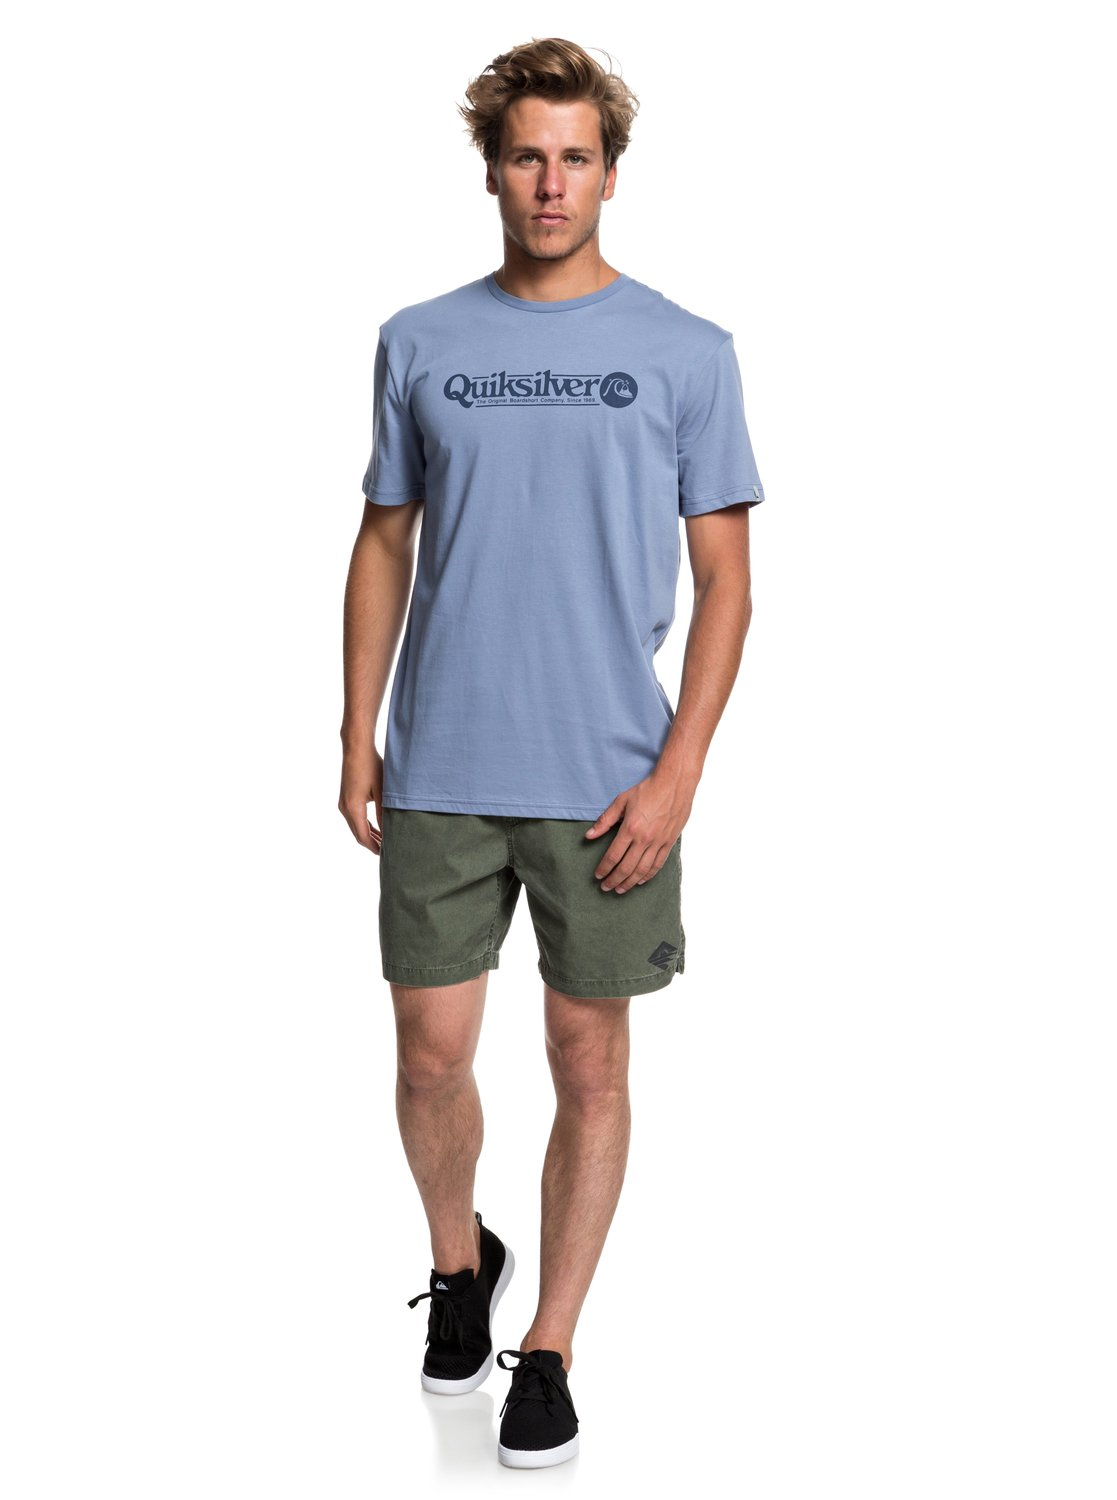 Quiksilver-Art-Tickle-T-shirt-pour-Homme-EQYZT05259 miniature 10